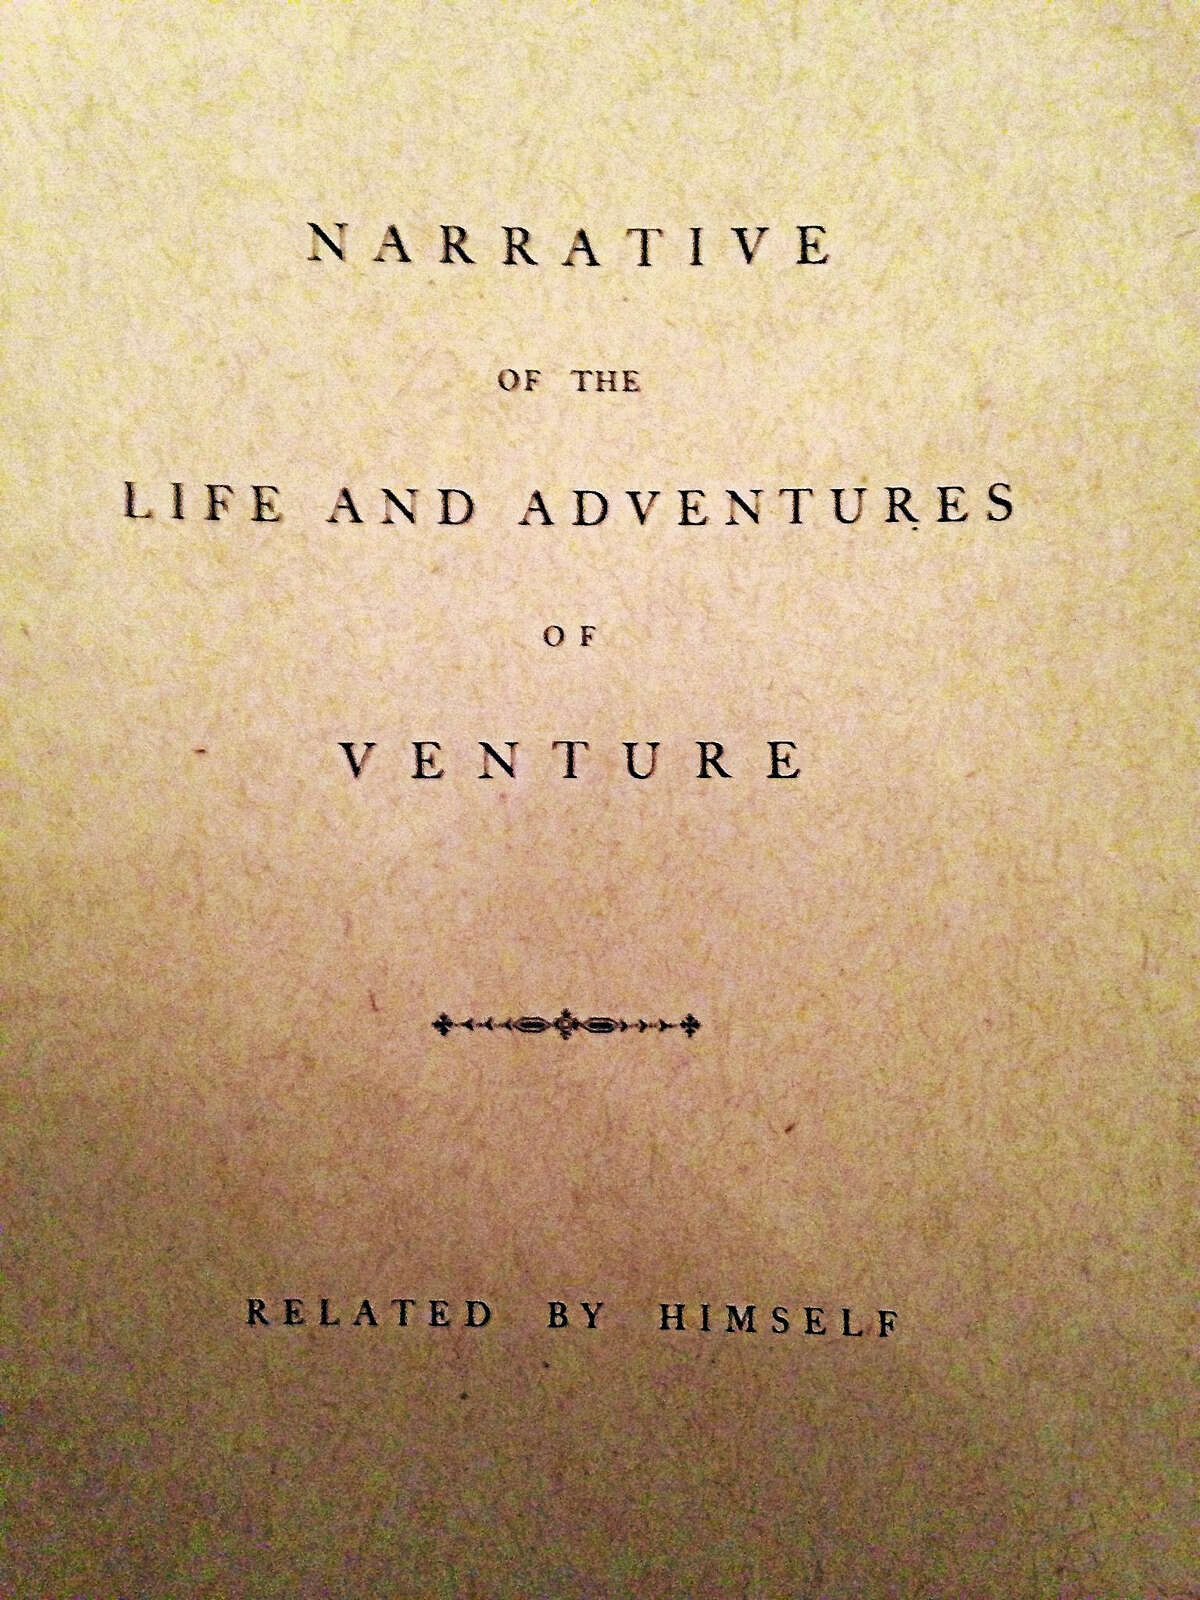 Venture Smith, a slave who purchased his own freedom in 1760, published an autobiography in 1978.